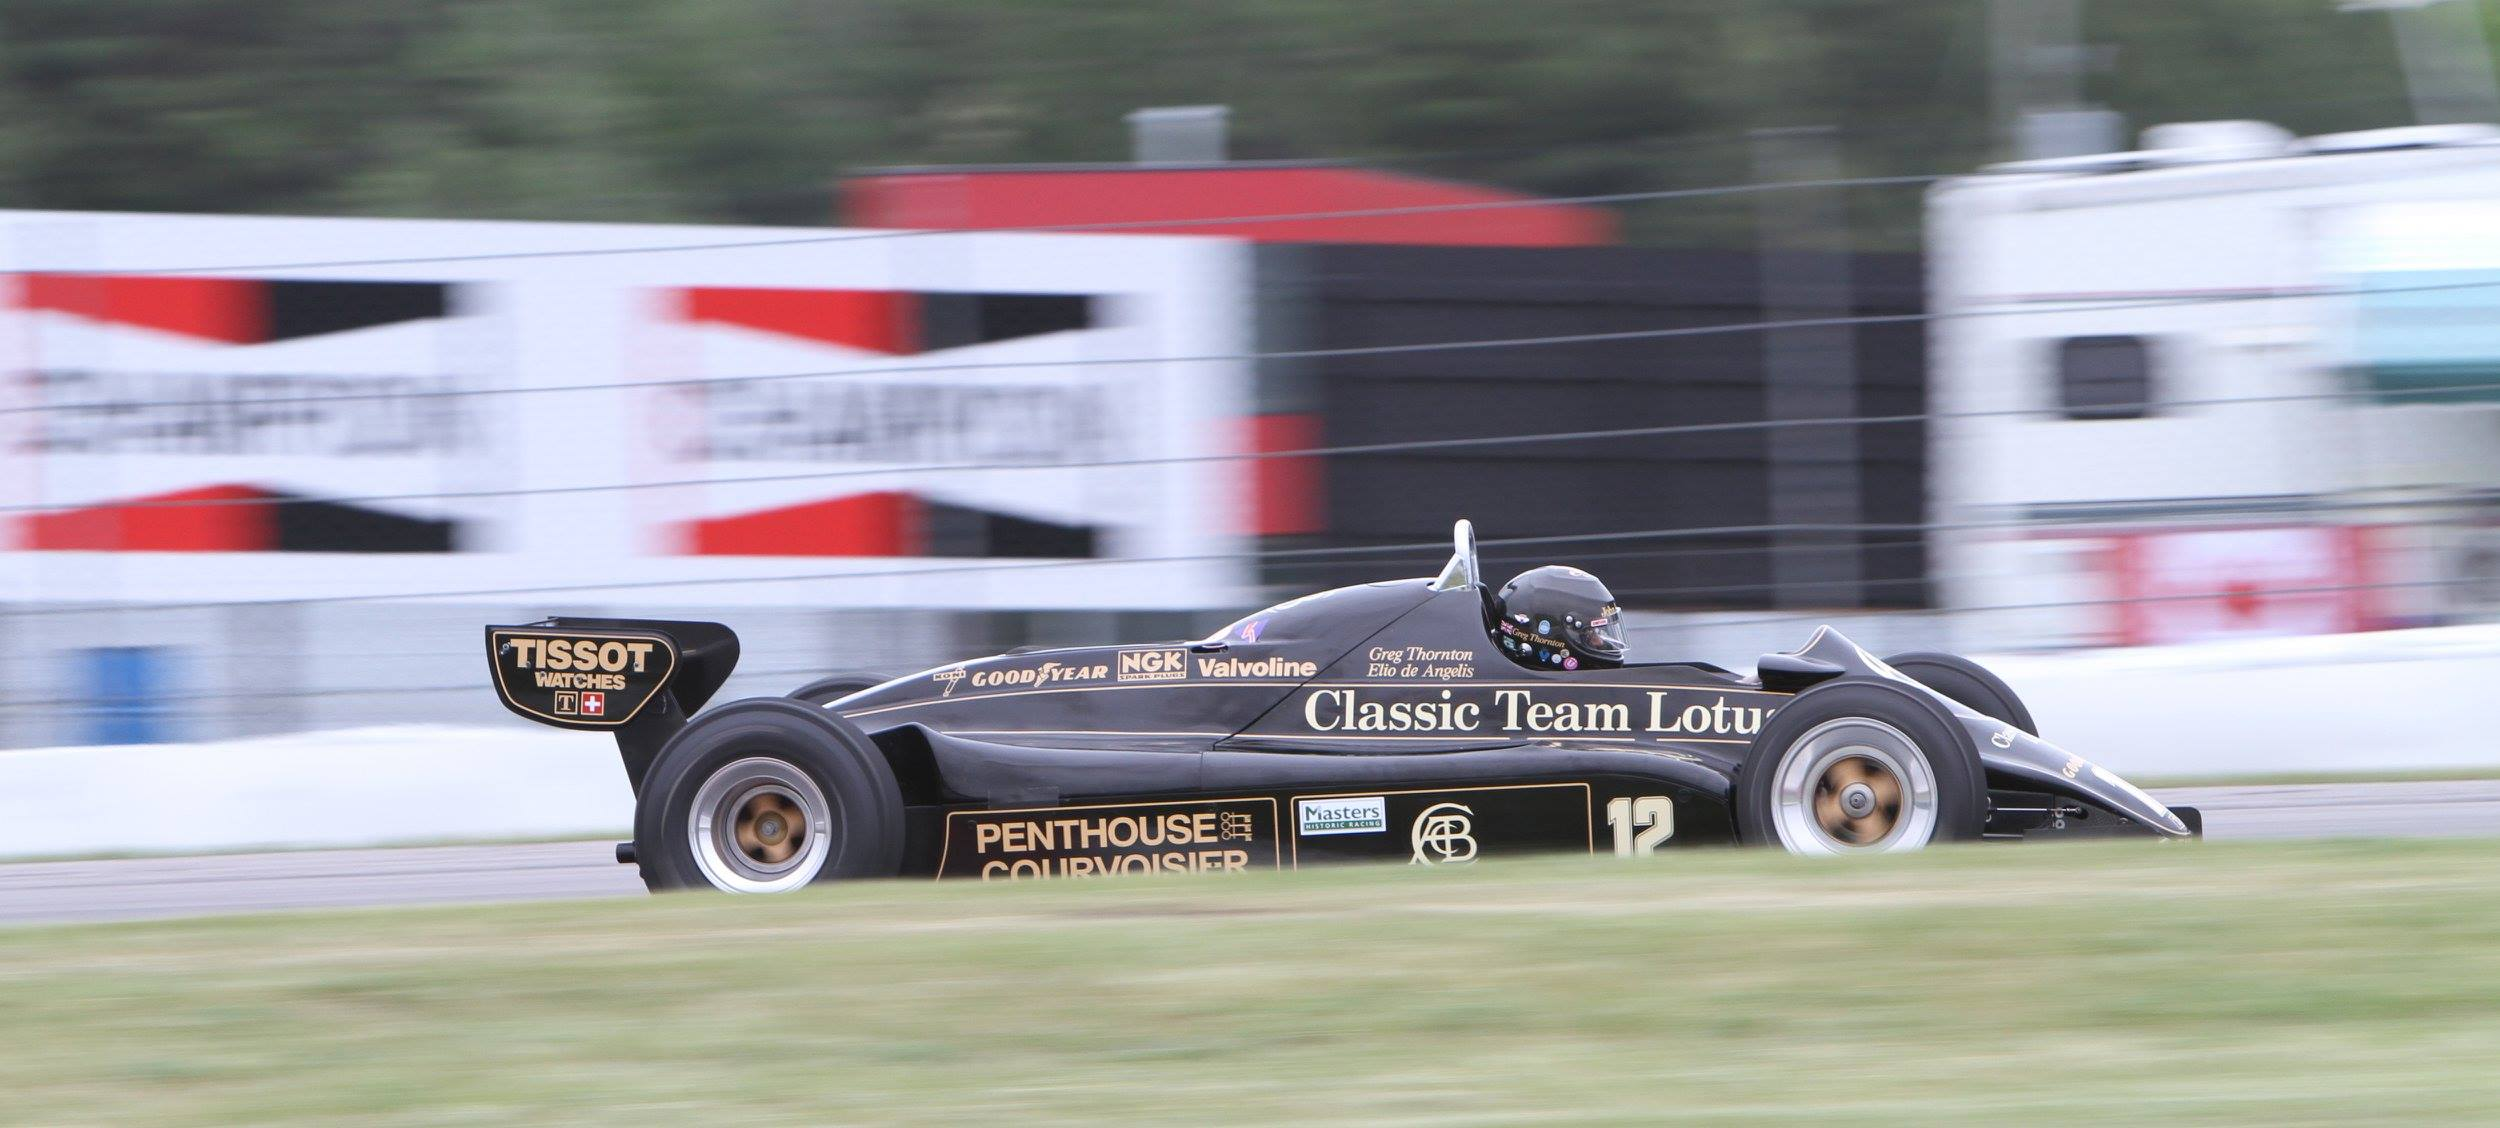 Classic Team Lotus Canada clean sweep